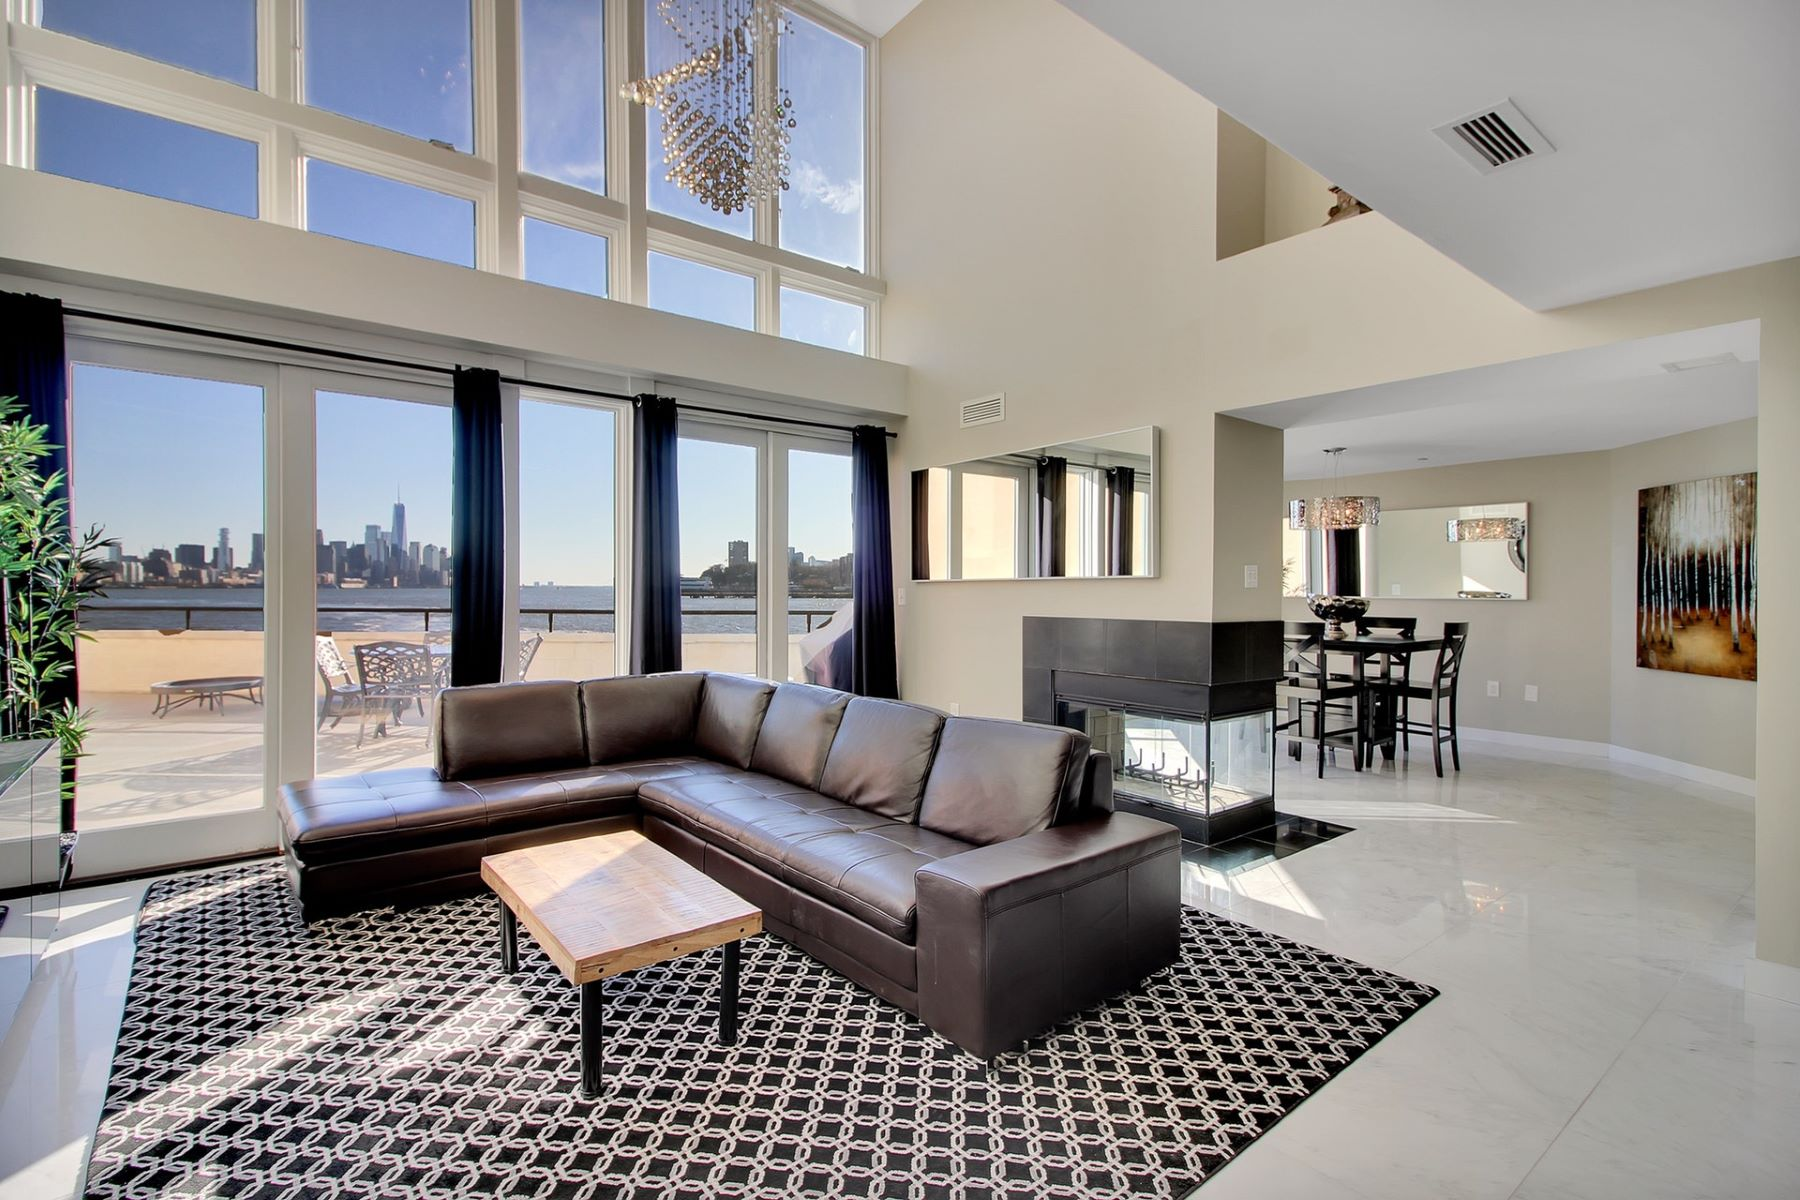 Condominium for Sale at Extremely Rare 3 Bedroom / 3.5 Bath Duplex 600 Harbor Blvd #672, Weehawken, New Jersey 07086 United States